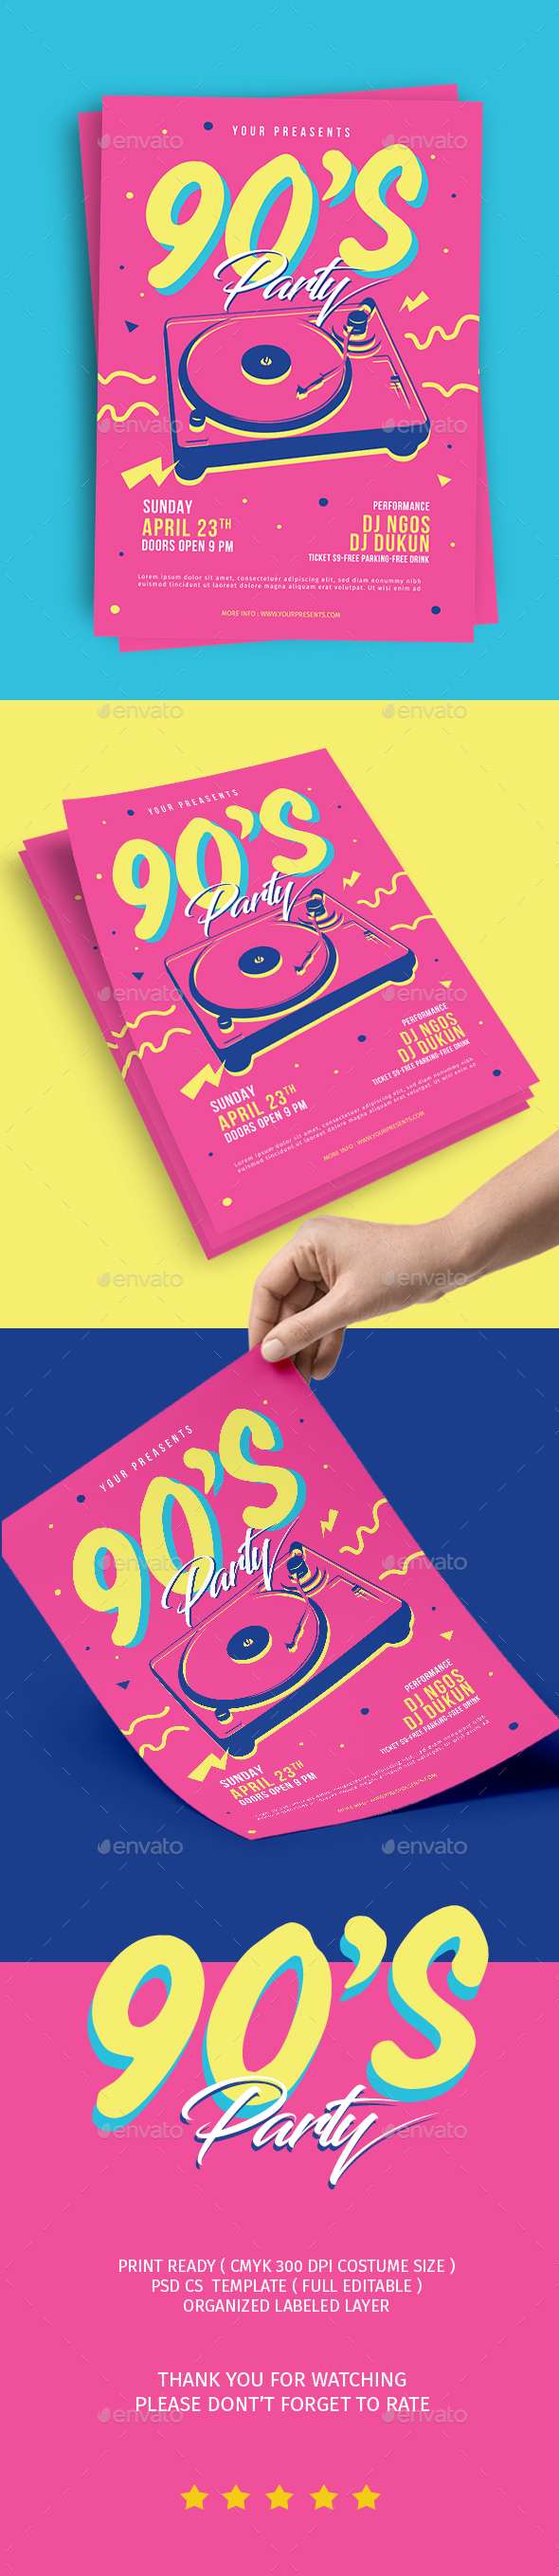 90's Music Event Flyer - Flyers Print Templates